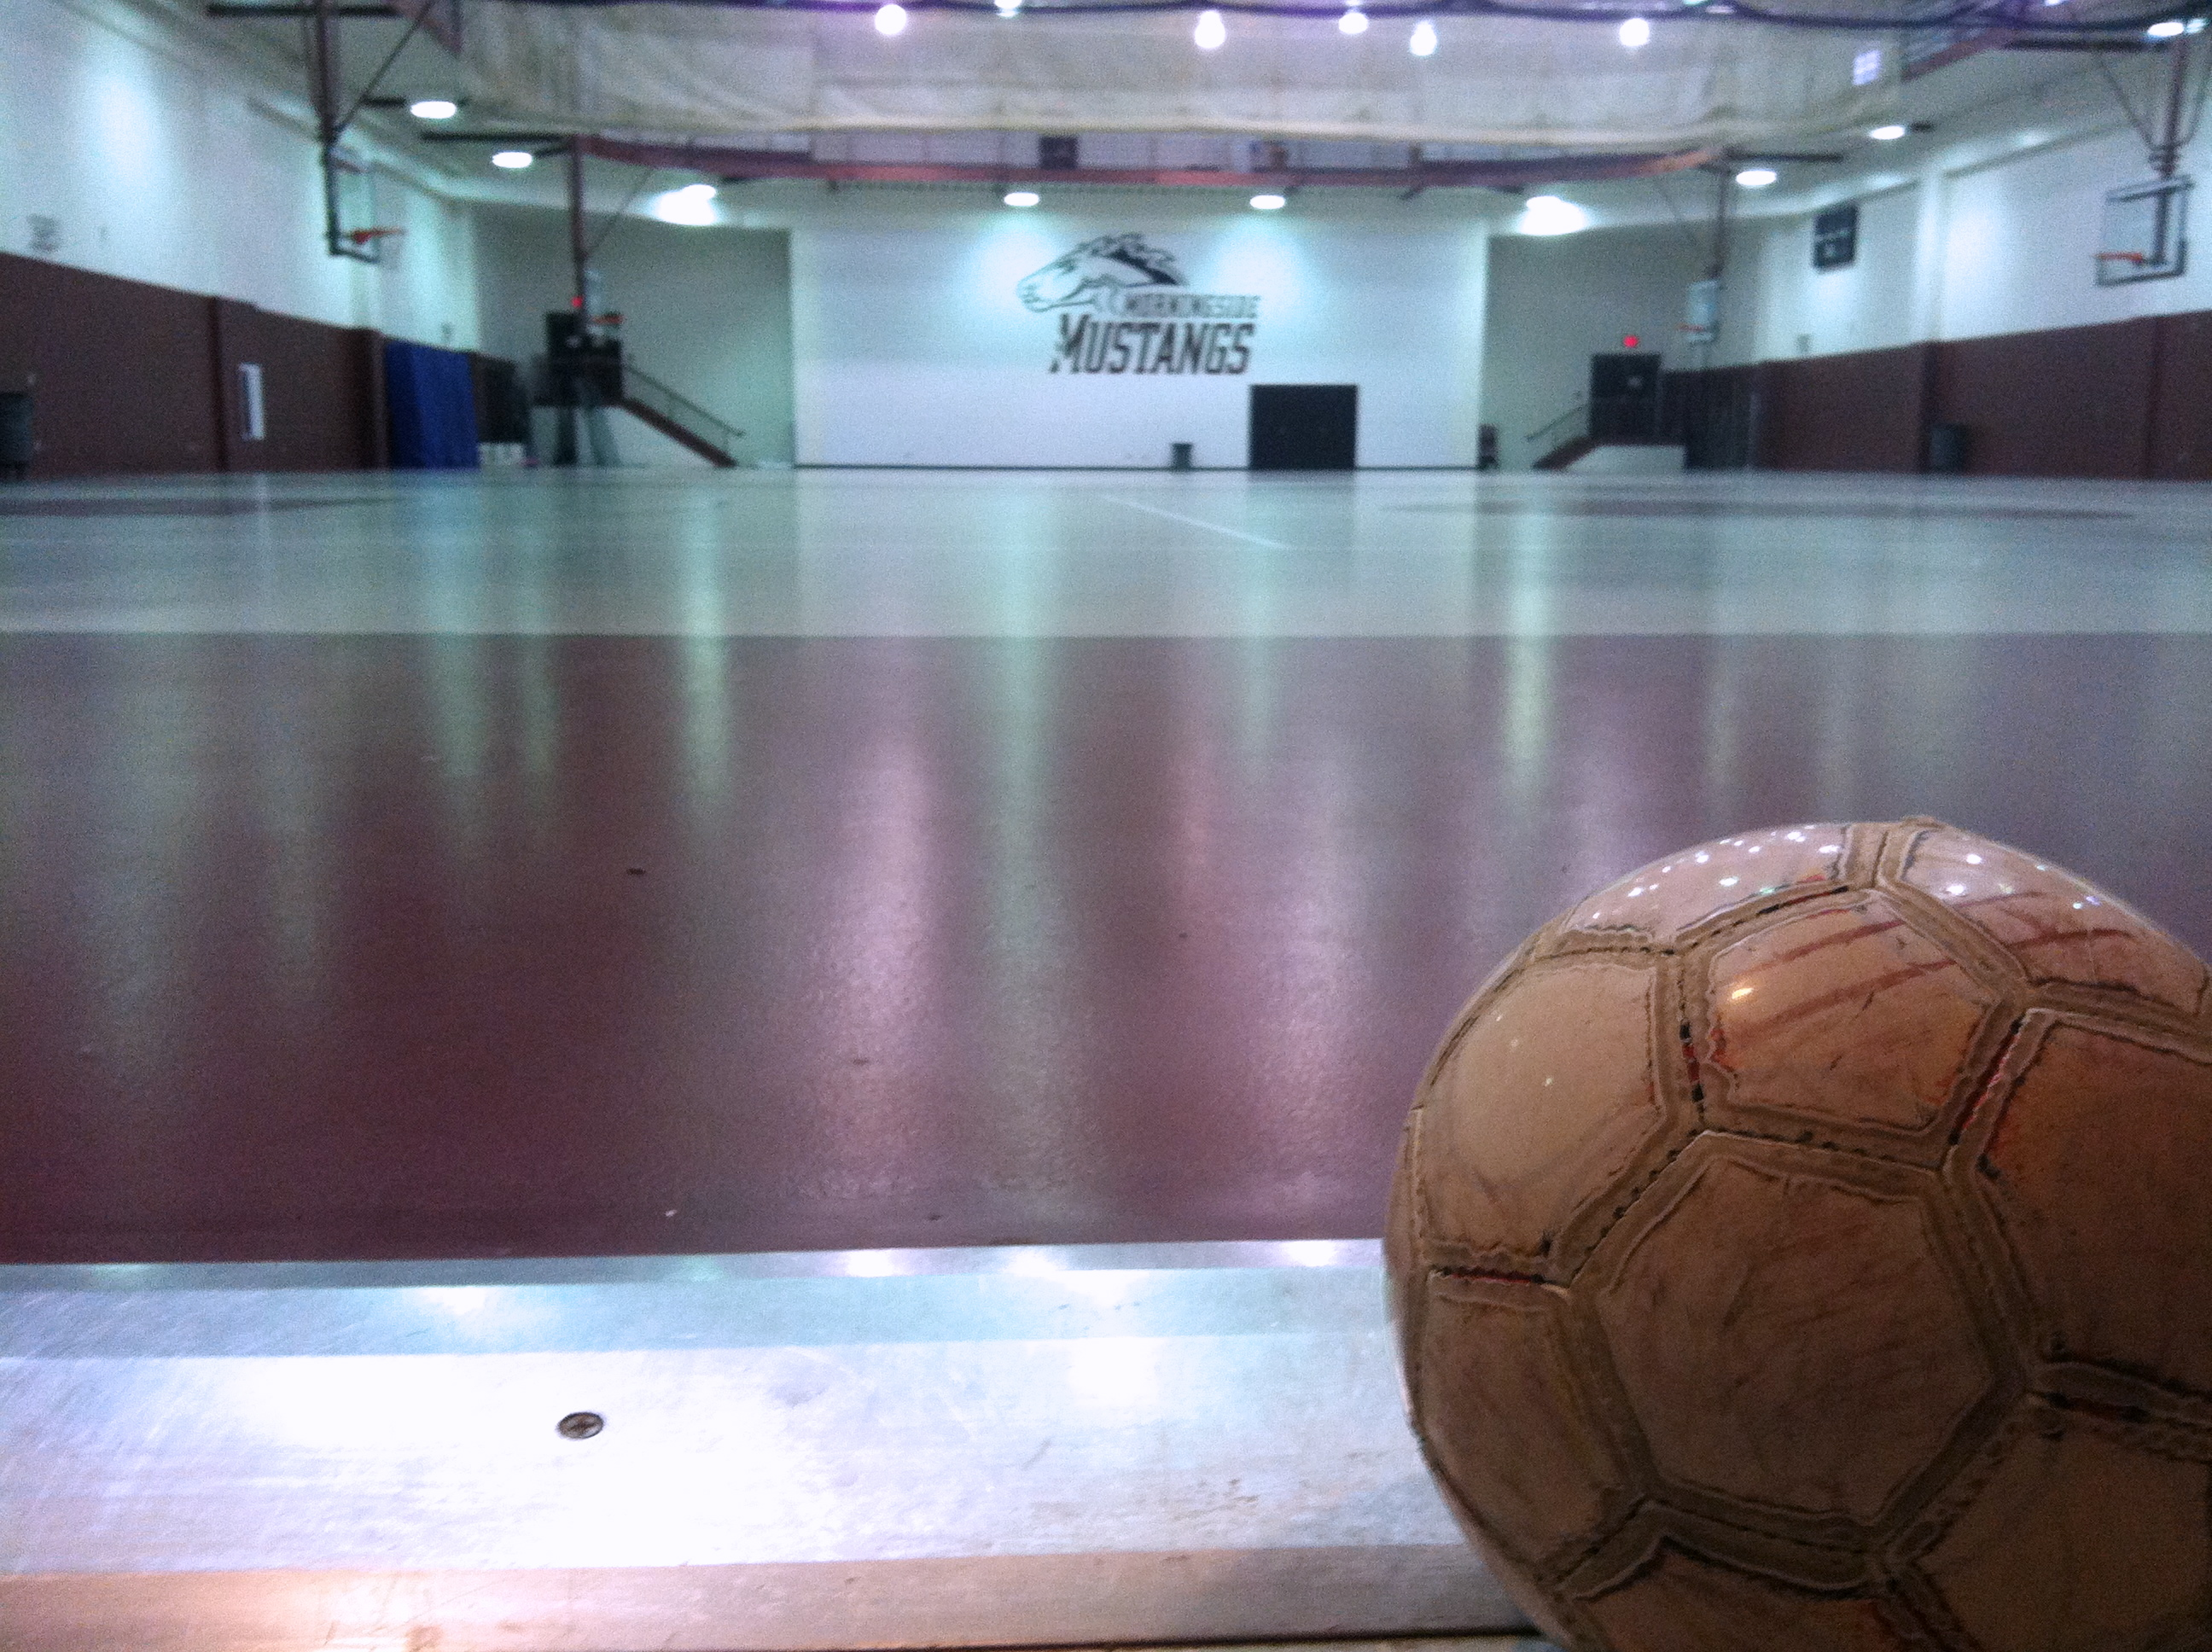 One of the favorite parts of my Monday. I retired earlier this year from the Morningside Soccer team, but recently I've been warming up before my workouts with a soccer ball. It's been a nice release.